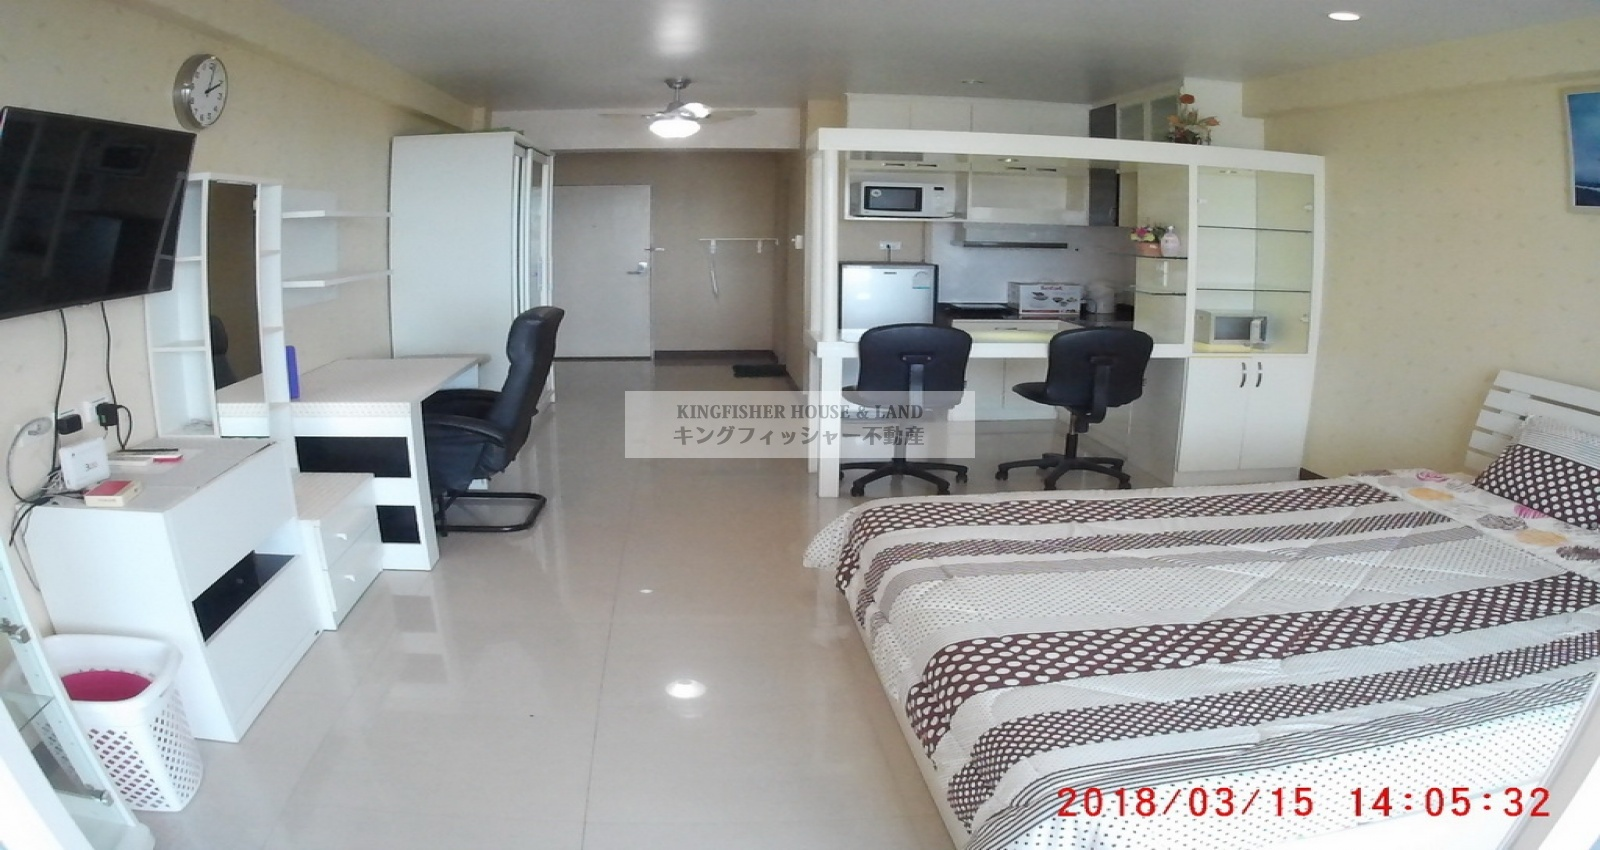 1 Bedrooms, Condominium, For Rent, 1 Bathrooms, Listing ID 1244, Sriracha, Thailand, 20110,